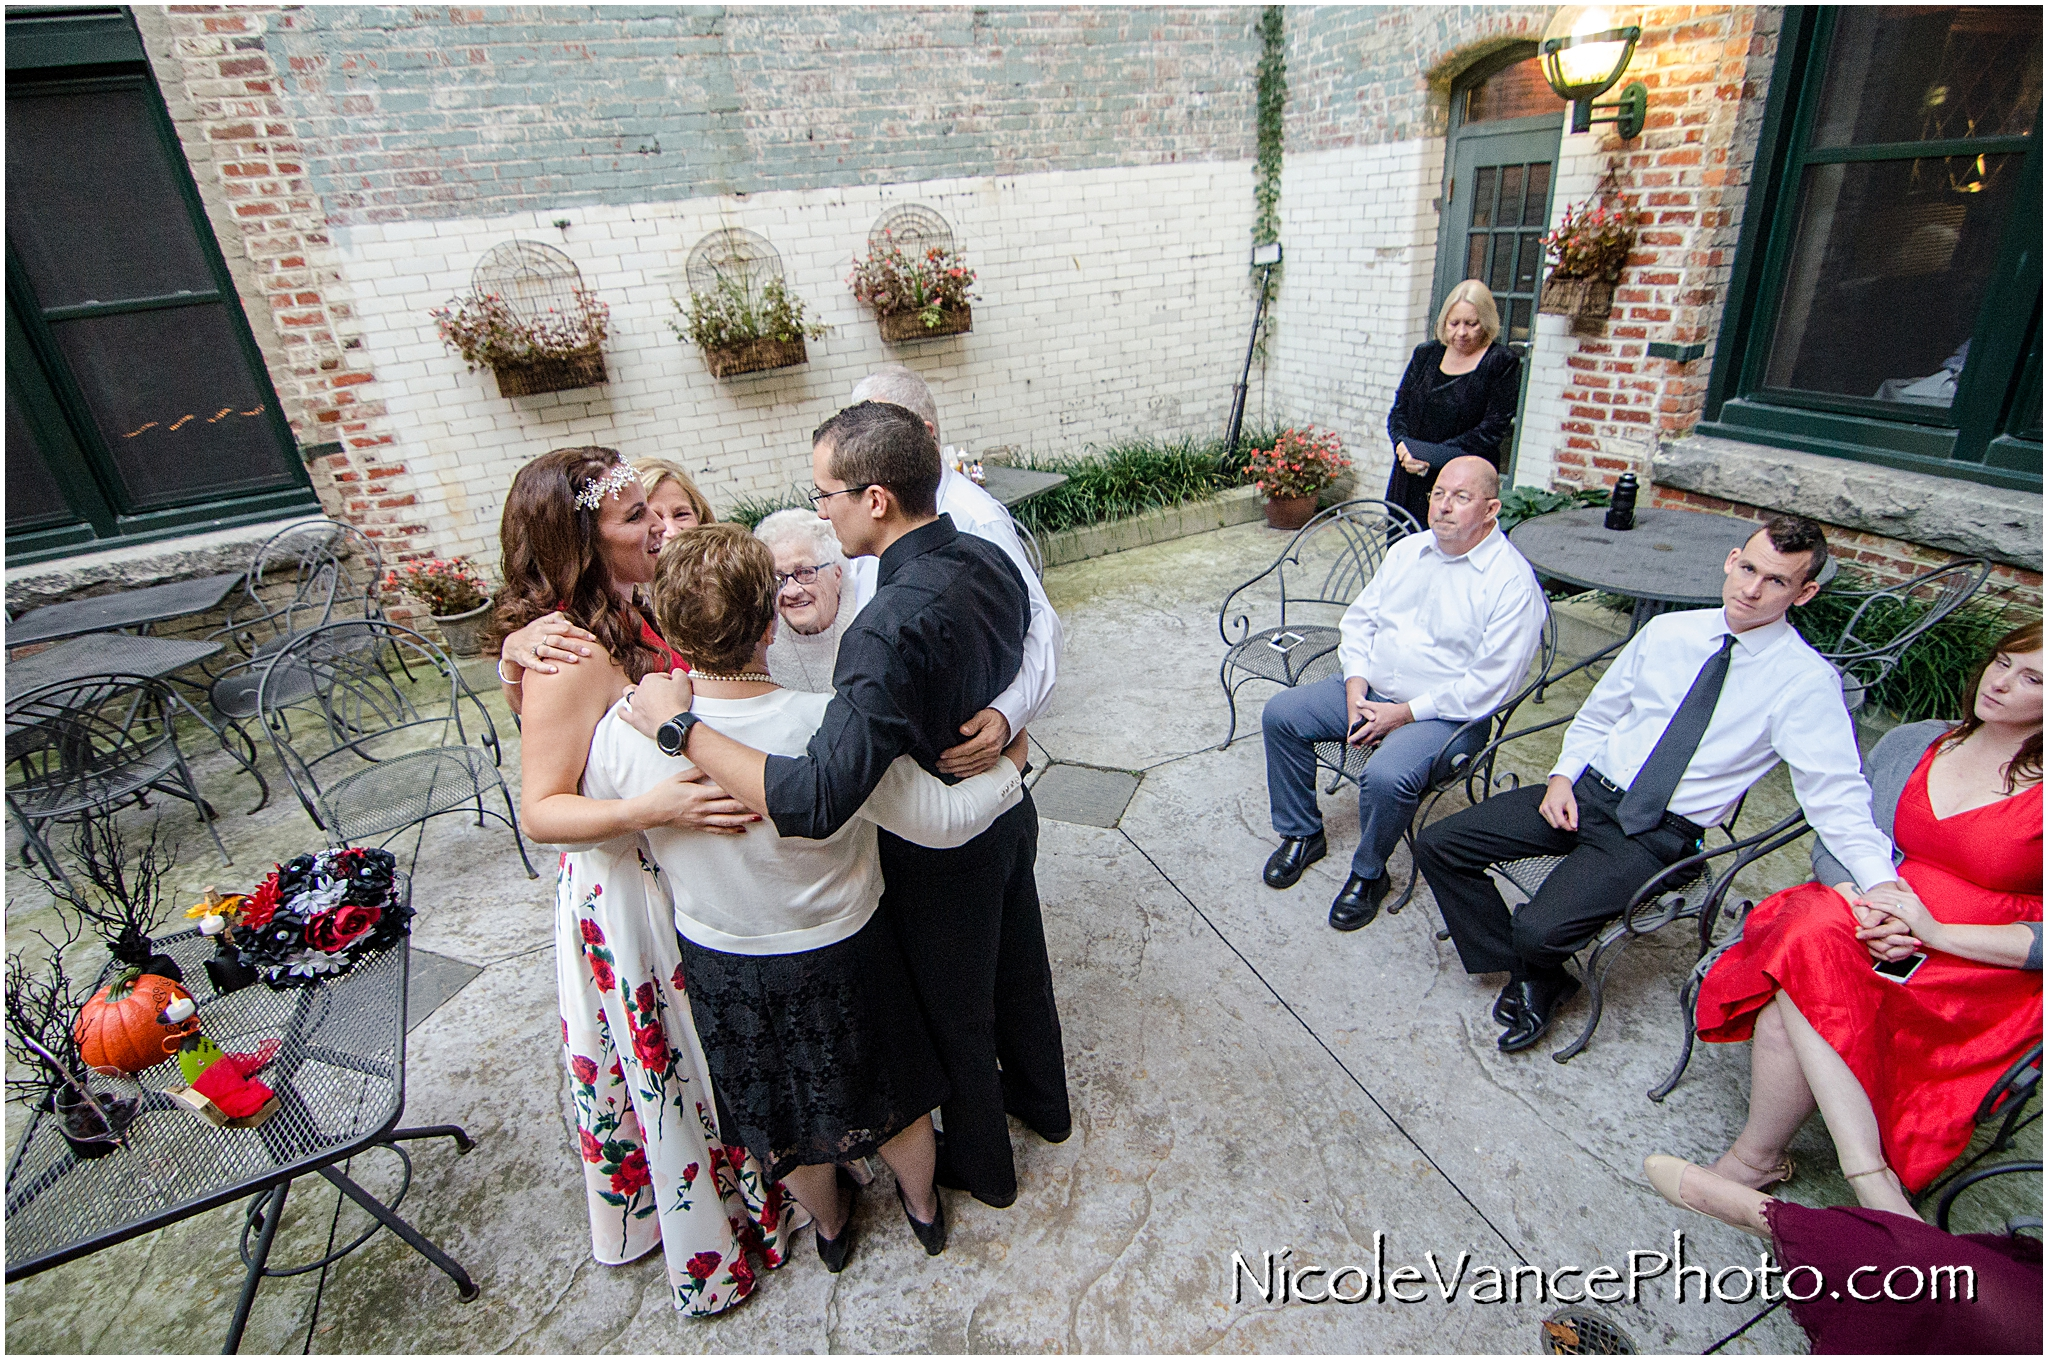 The whole family embraces after a wedding ceremony at Bookbinders on the back patio.